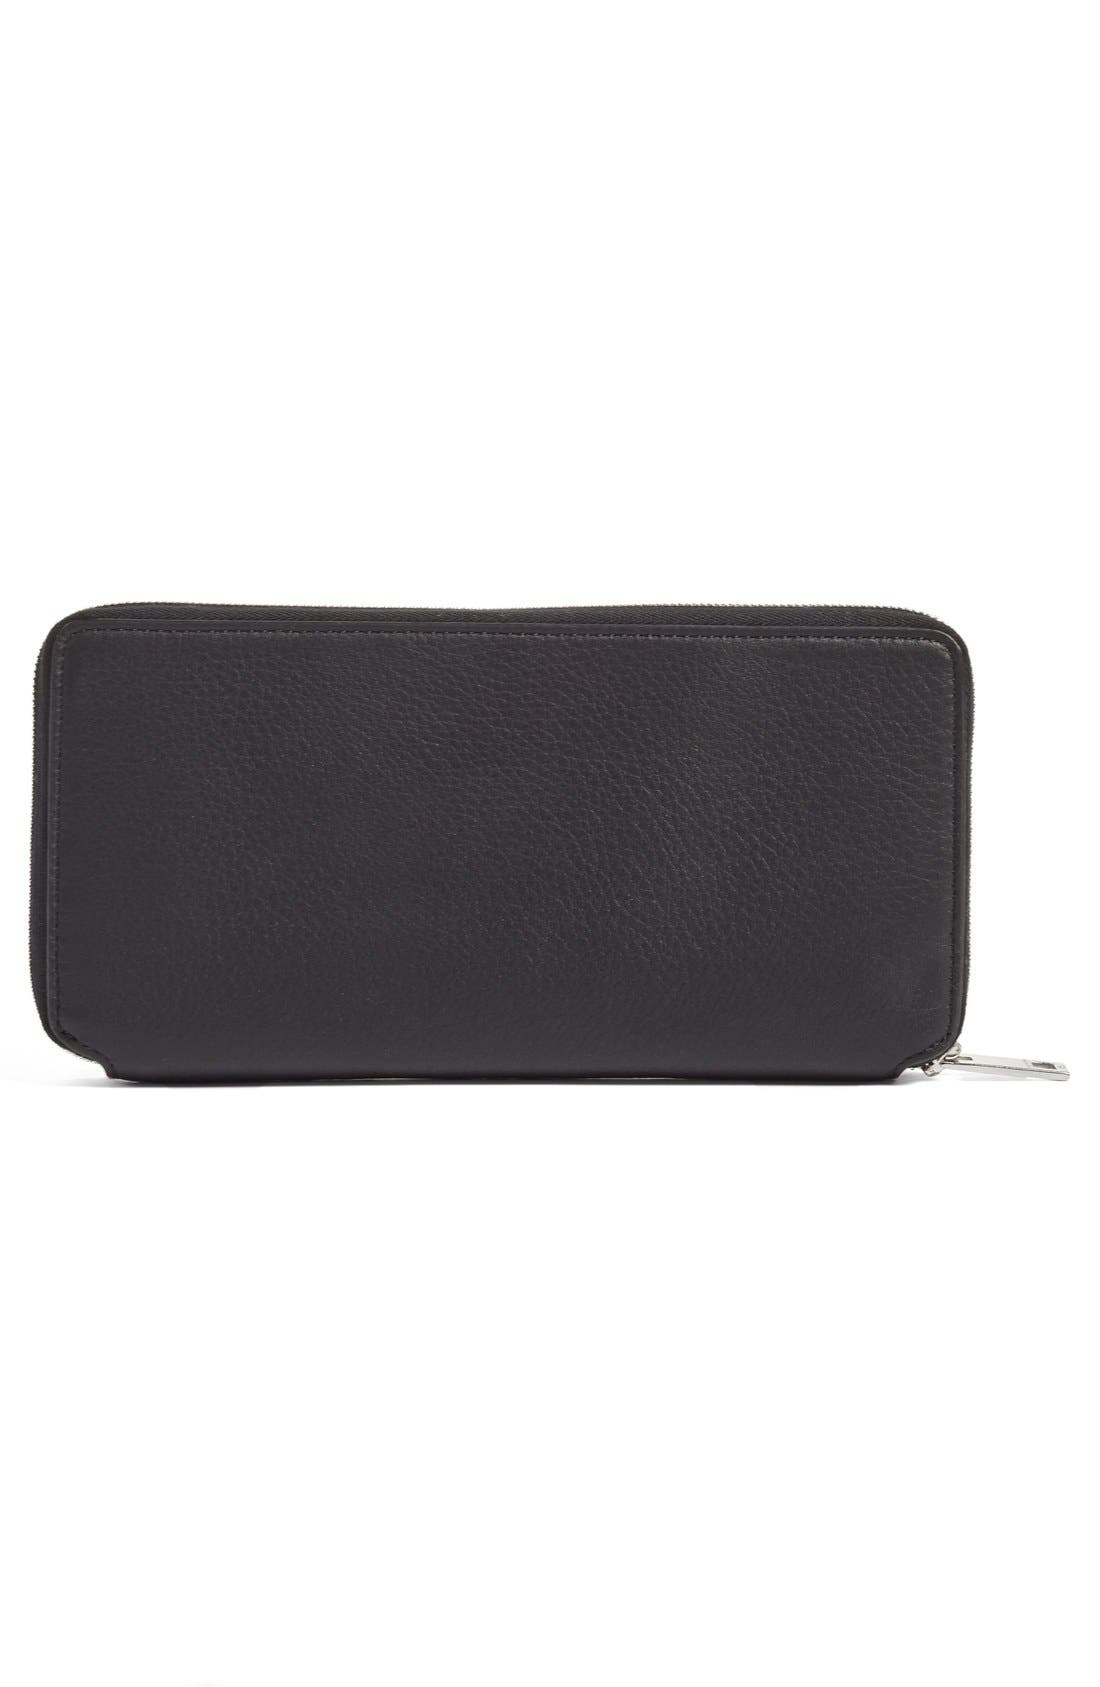 Leather Zip Around Wallet,                             Alternate thumbnail 4, color,                             001